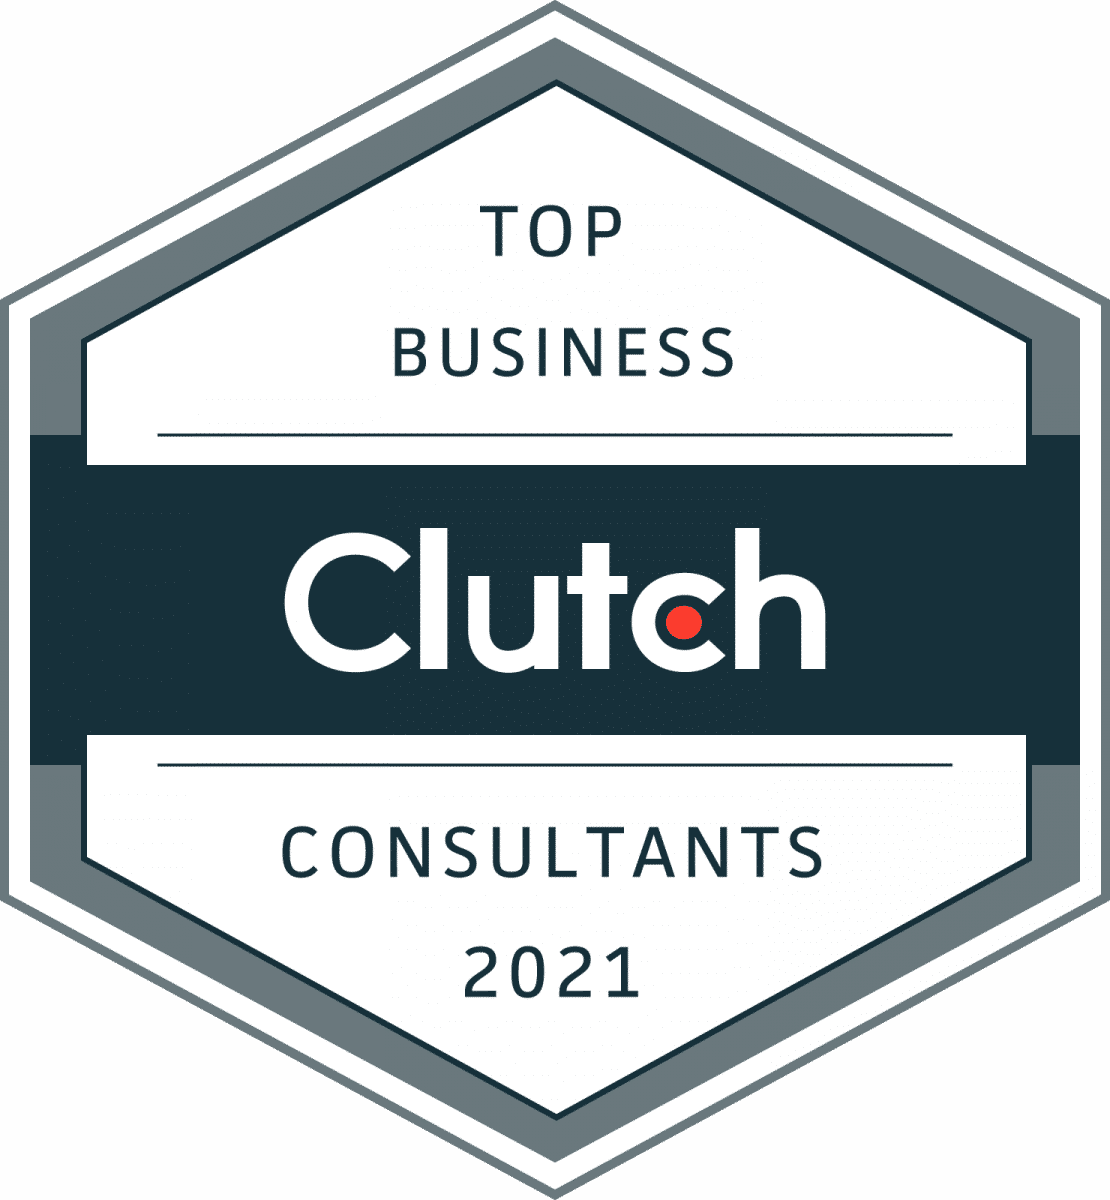 Best Consulting Firms - Clutch - The Source Approach - Amazon Consultant and eCommerce Consultant